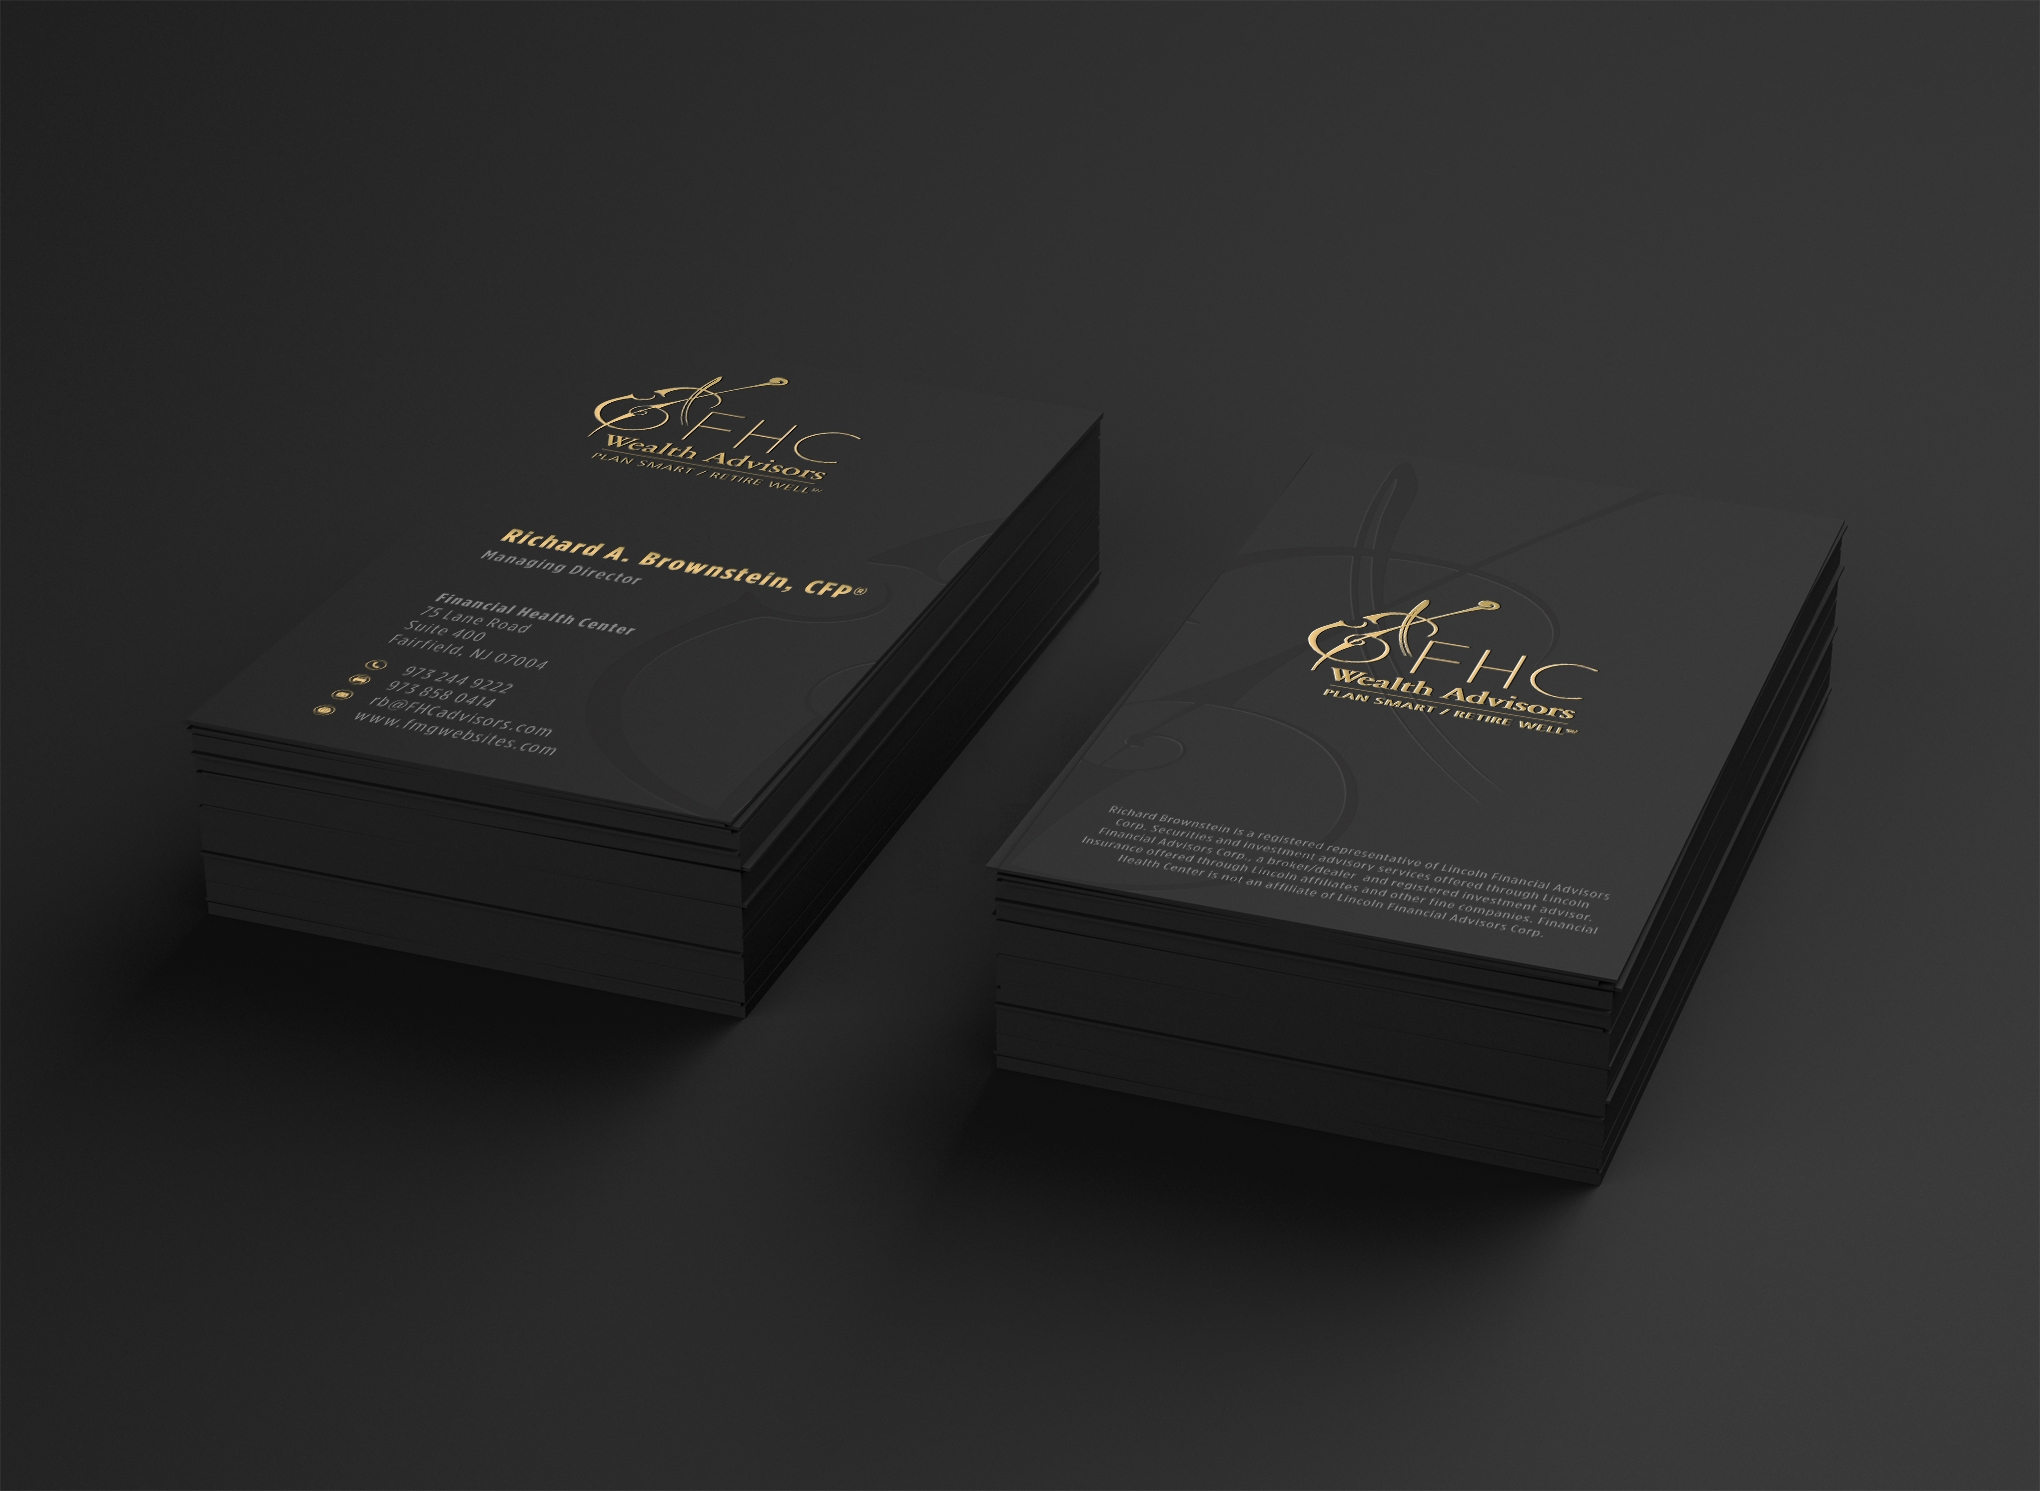 black business cards.jpg